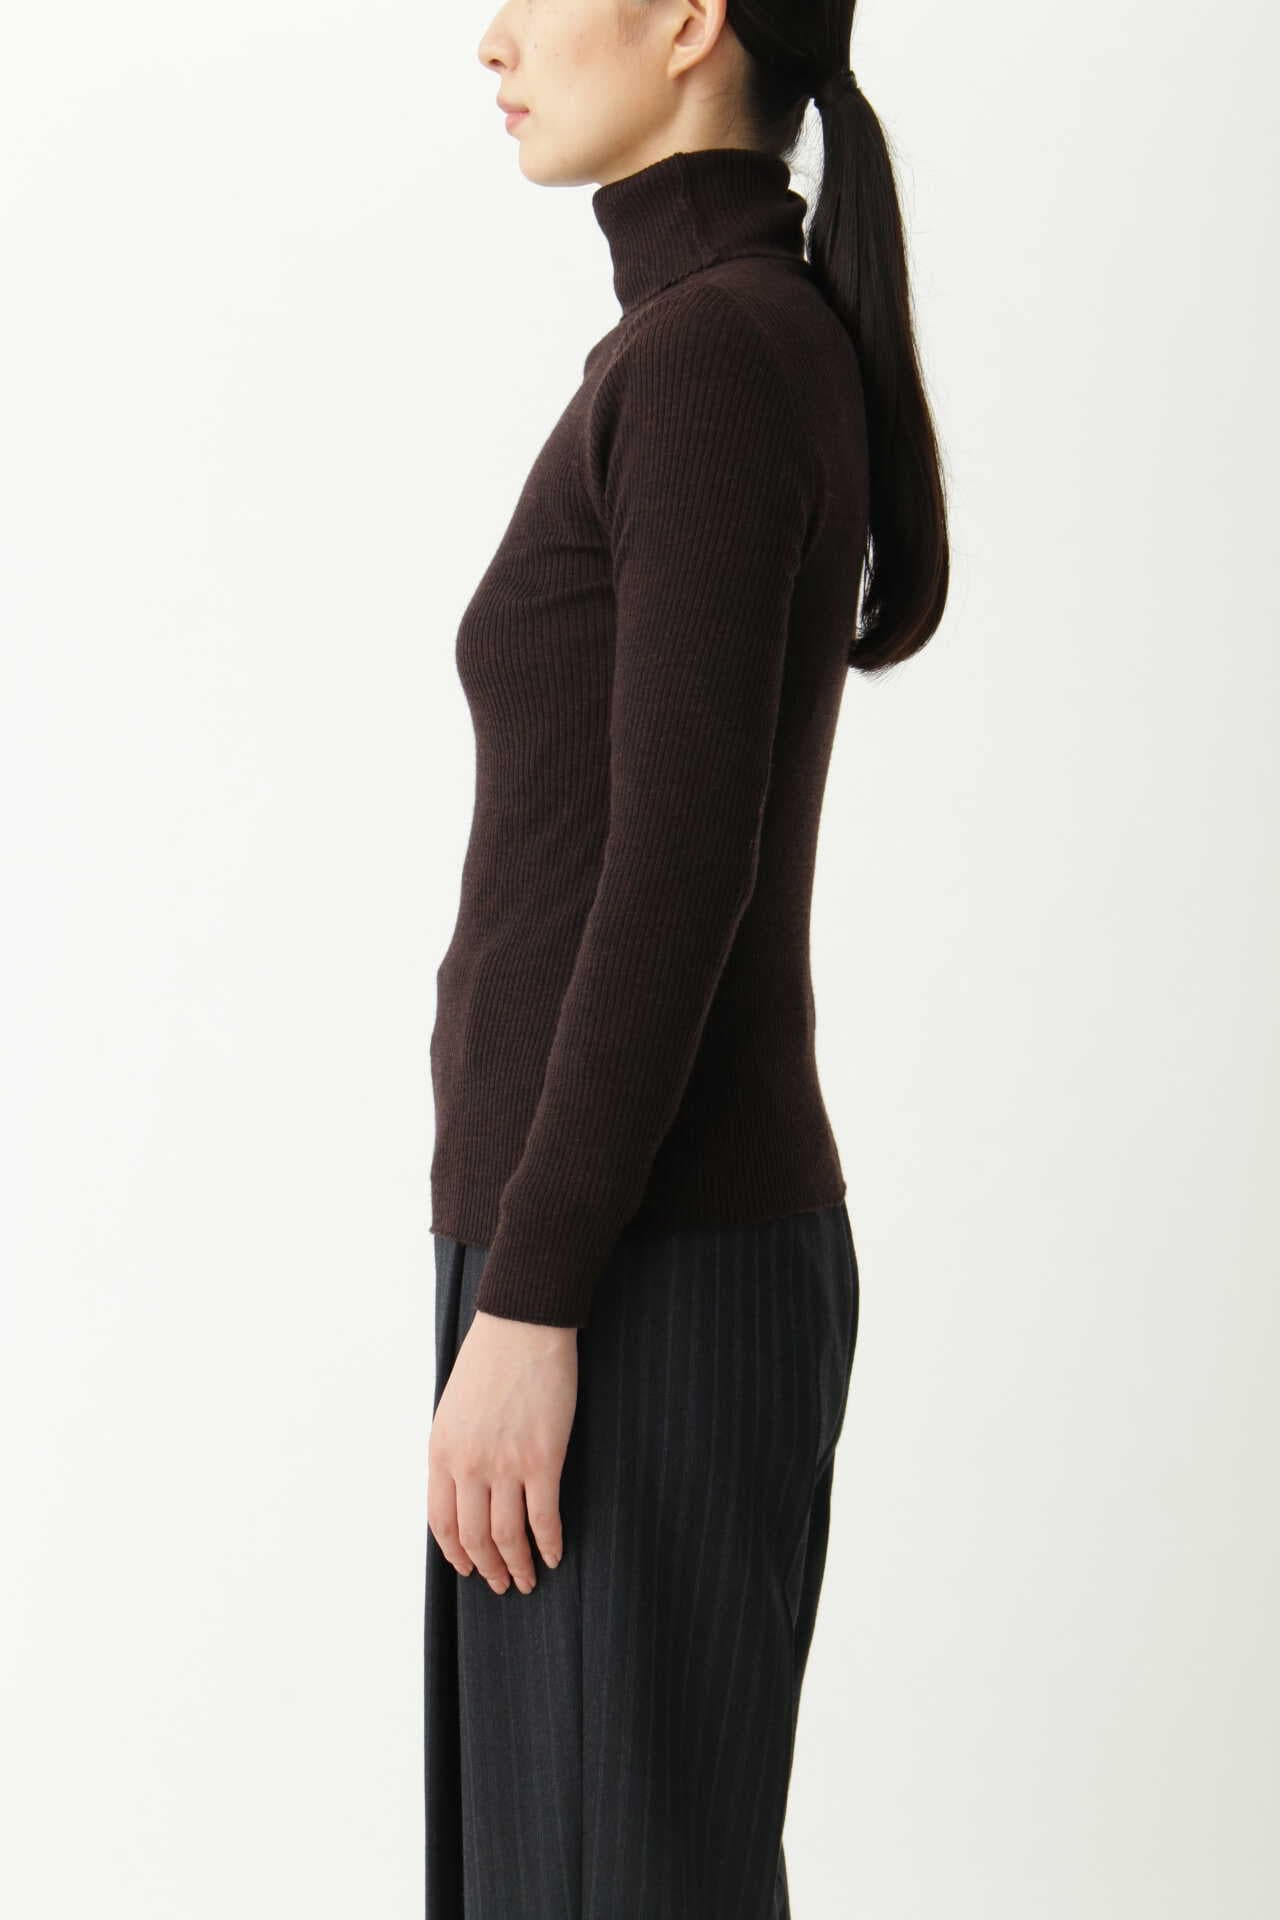 FINE RIB TURTLENECK11